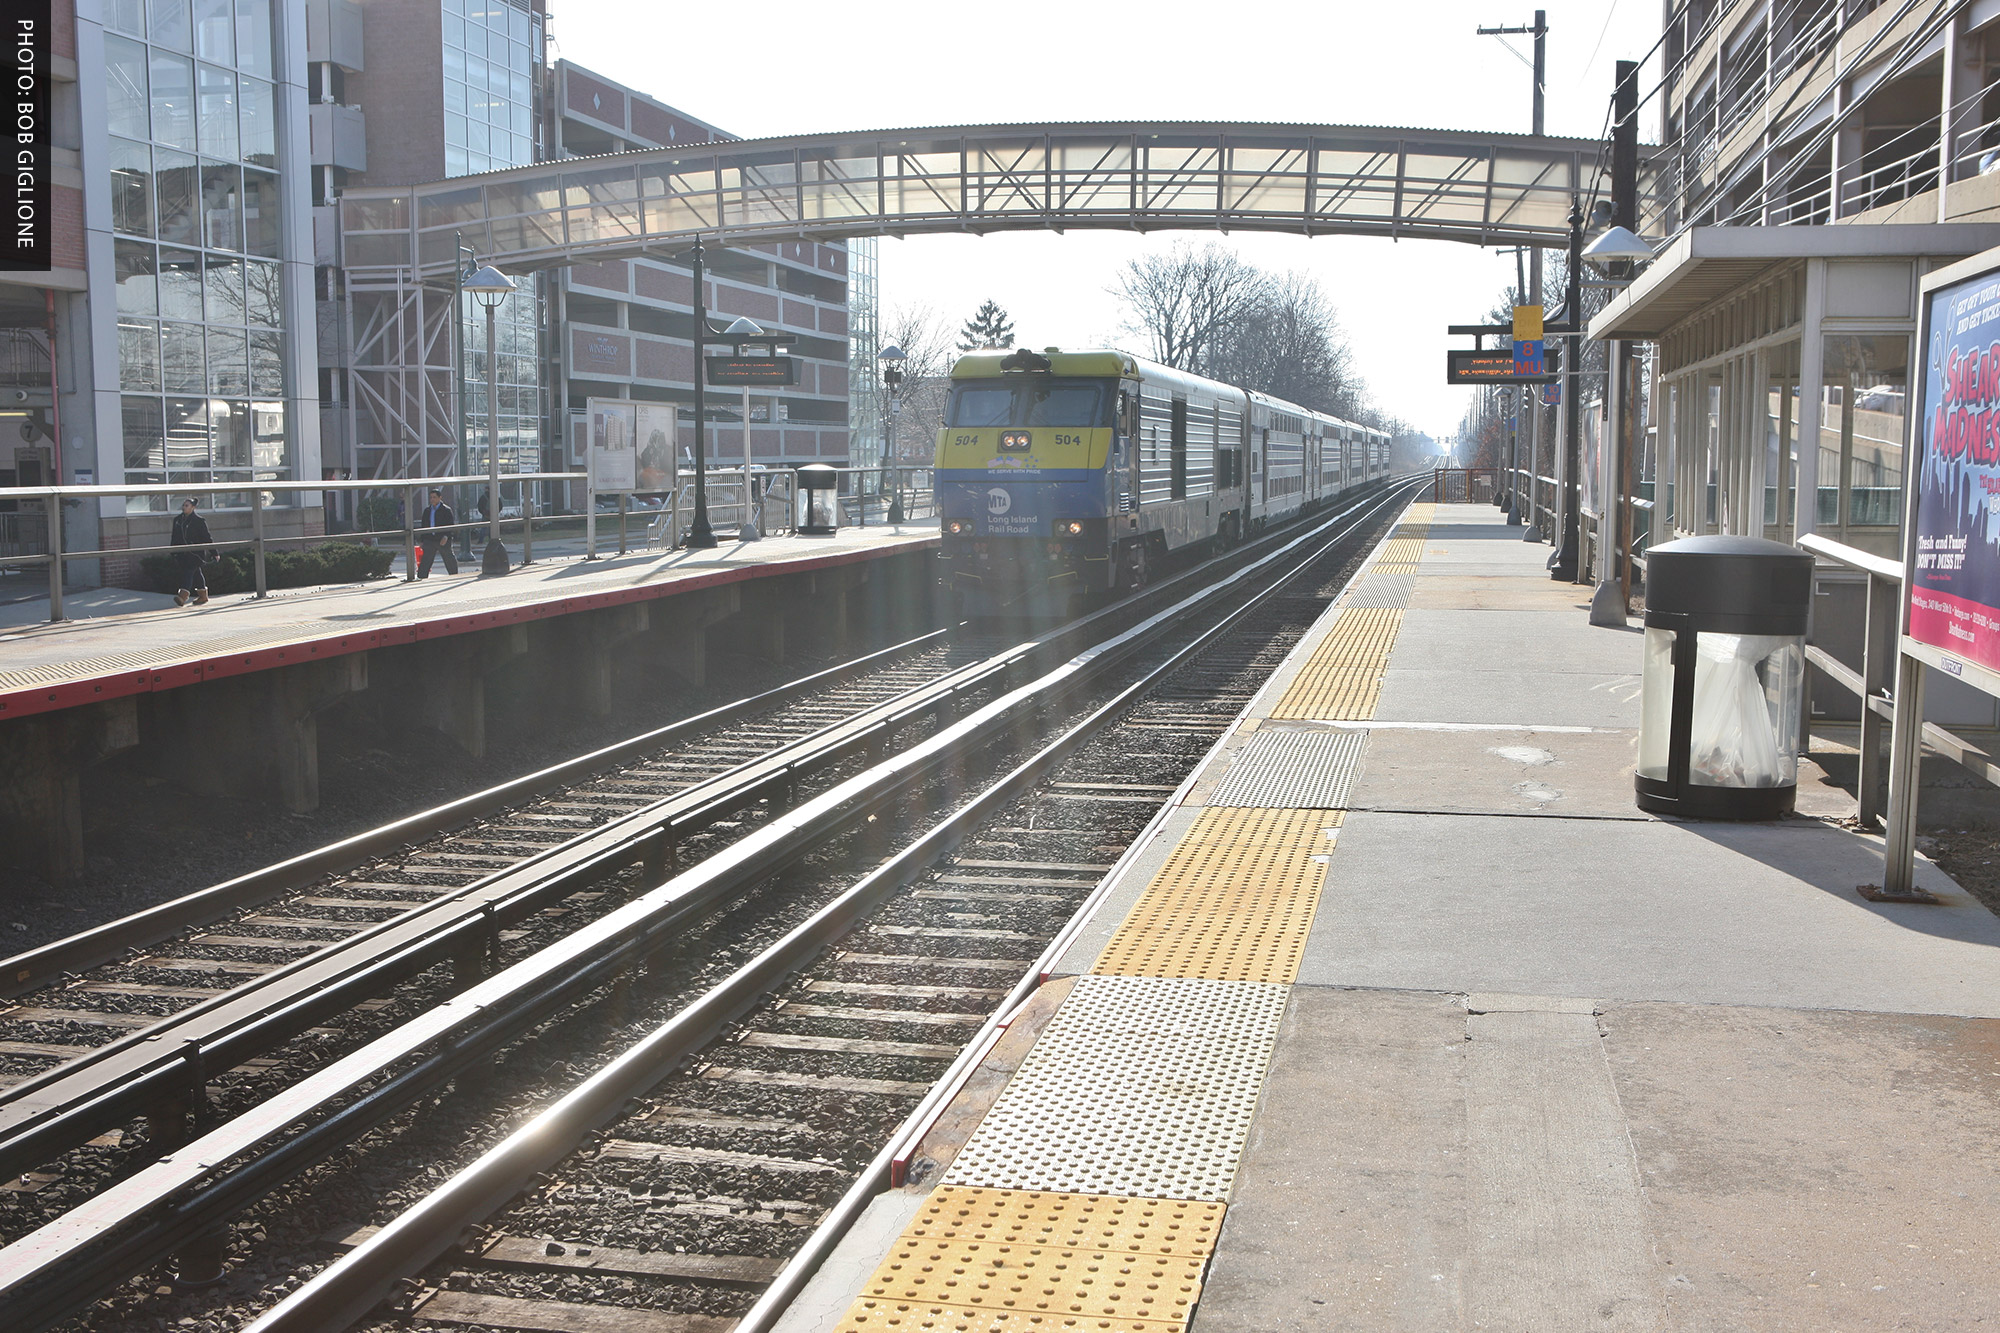 MTA plans to make monumental expansion to LIRR's main line The project would affect the more than 300,000 passengers